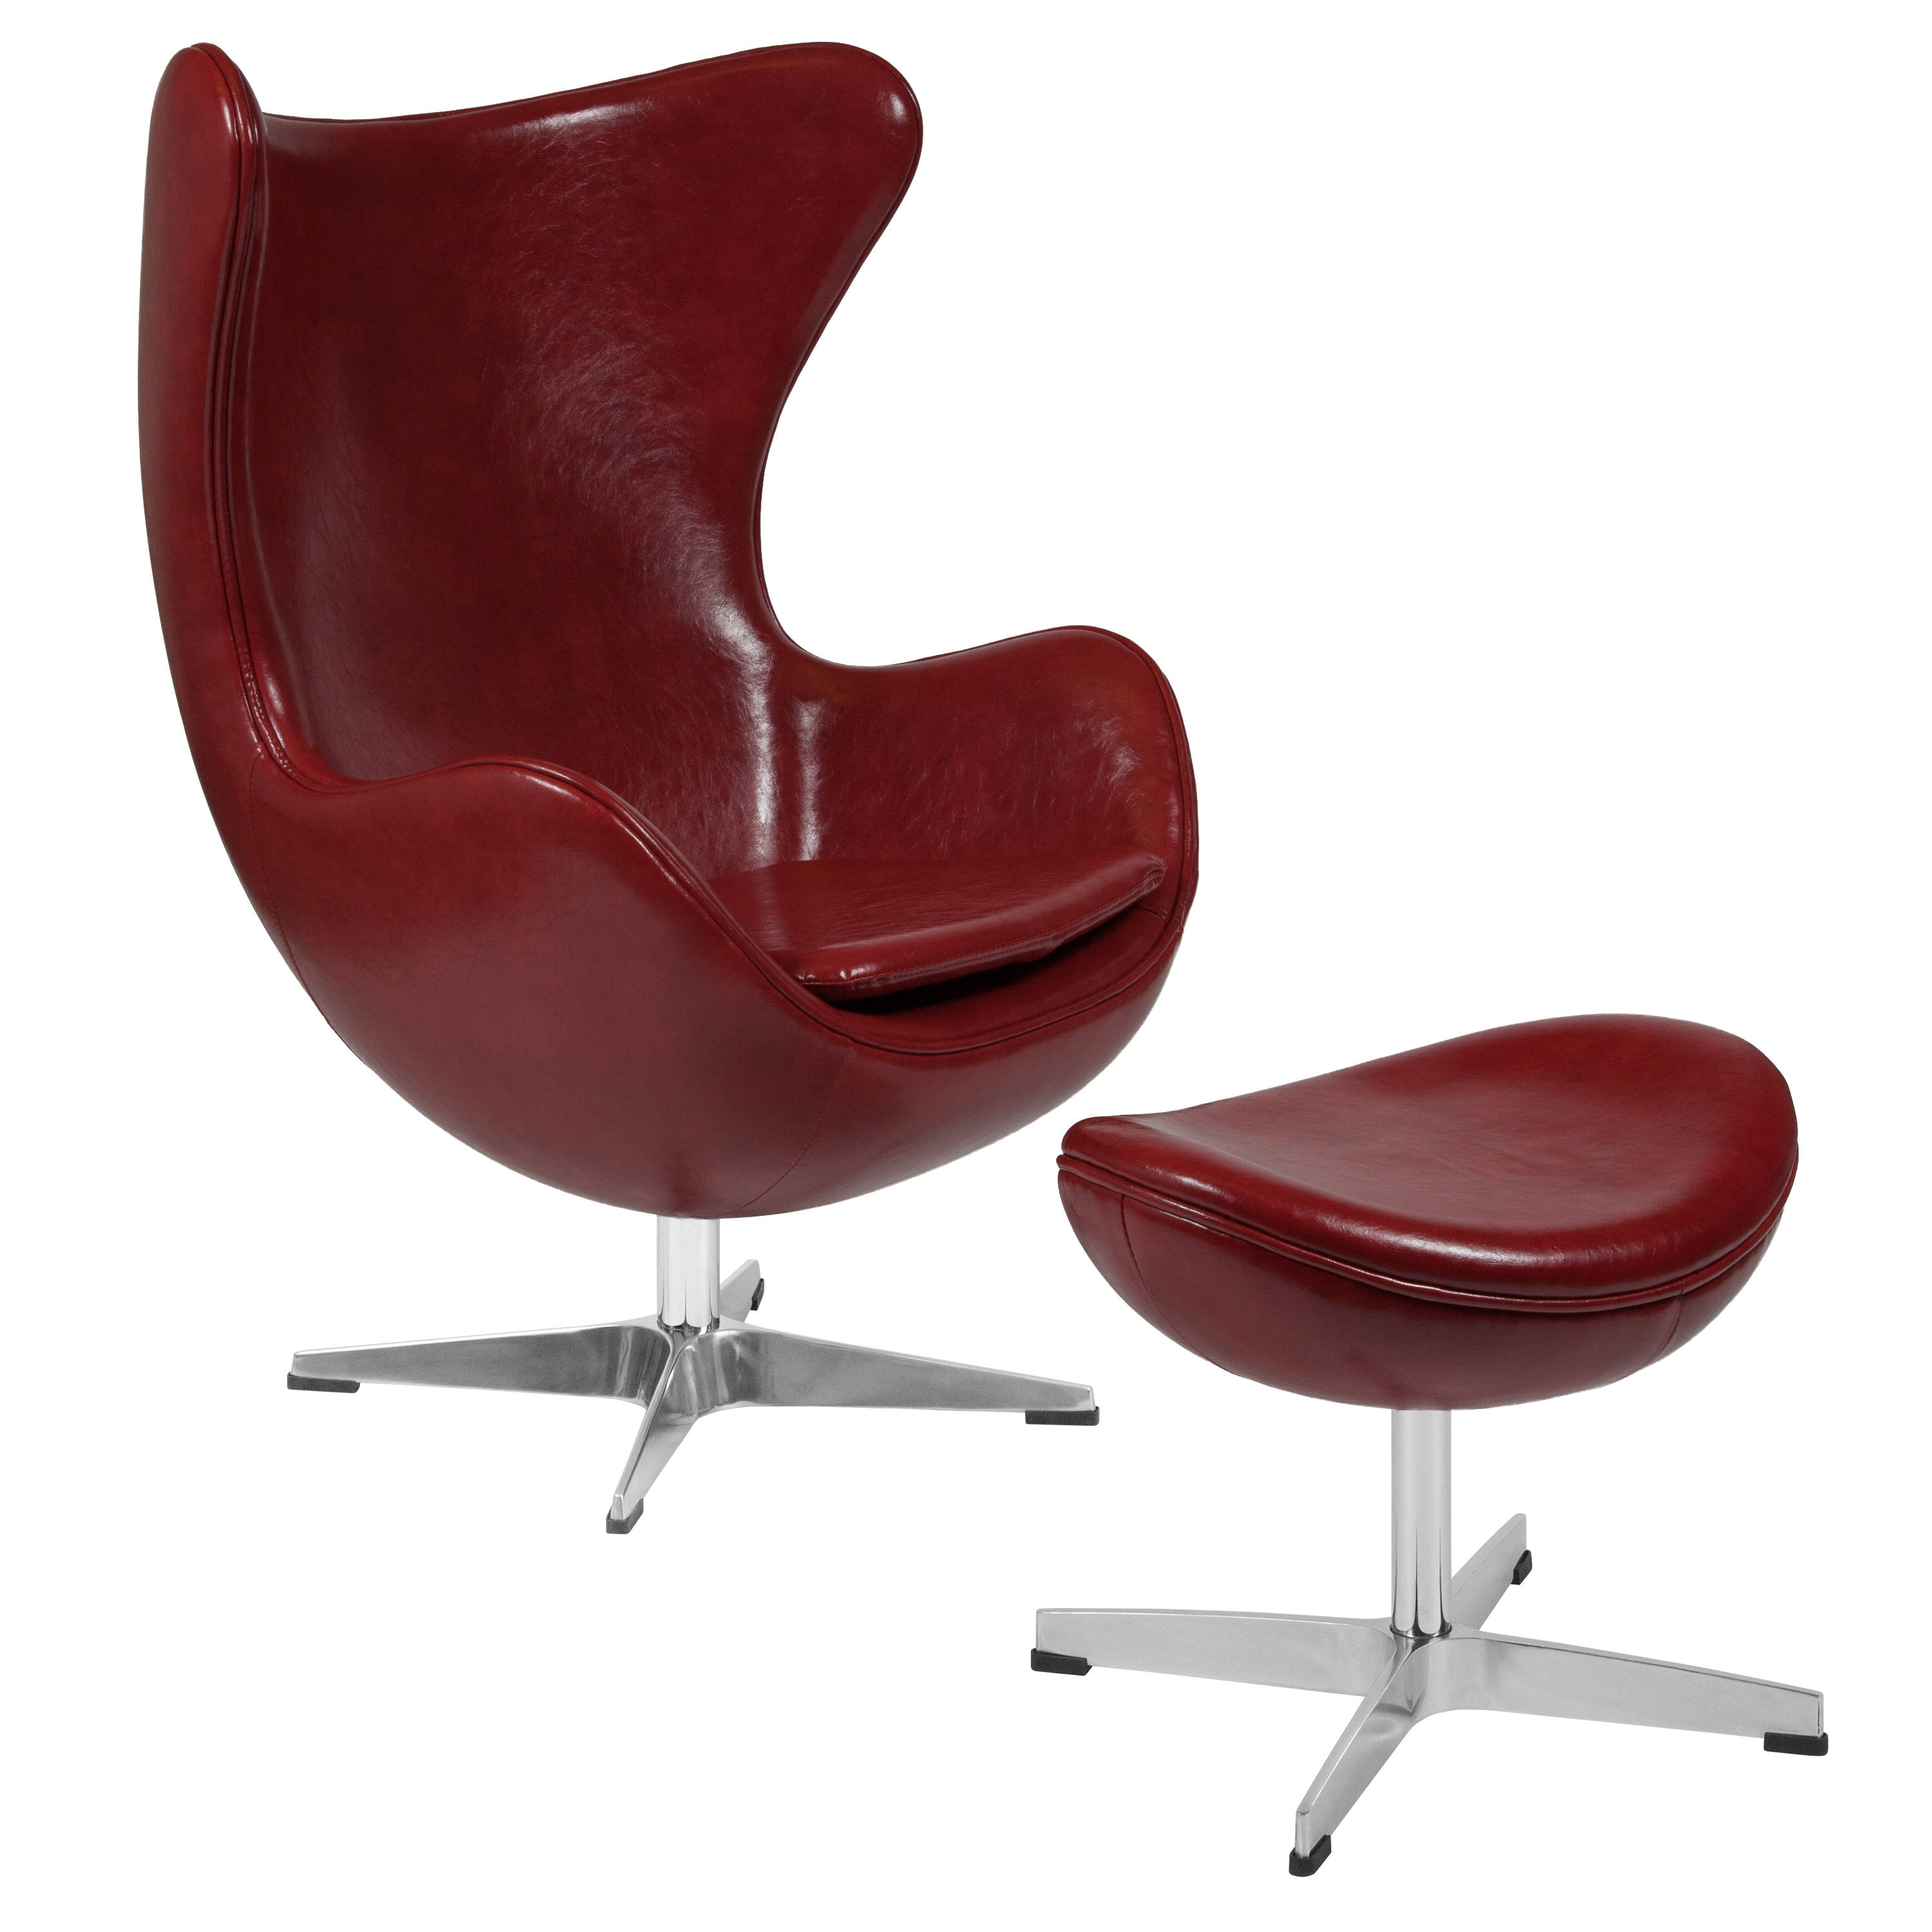 Cordovan Red Leather Egg Chair